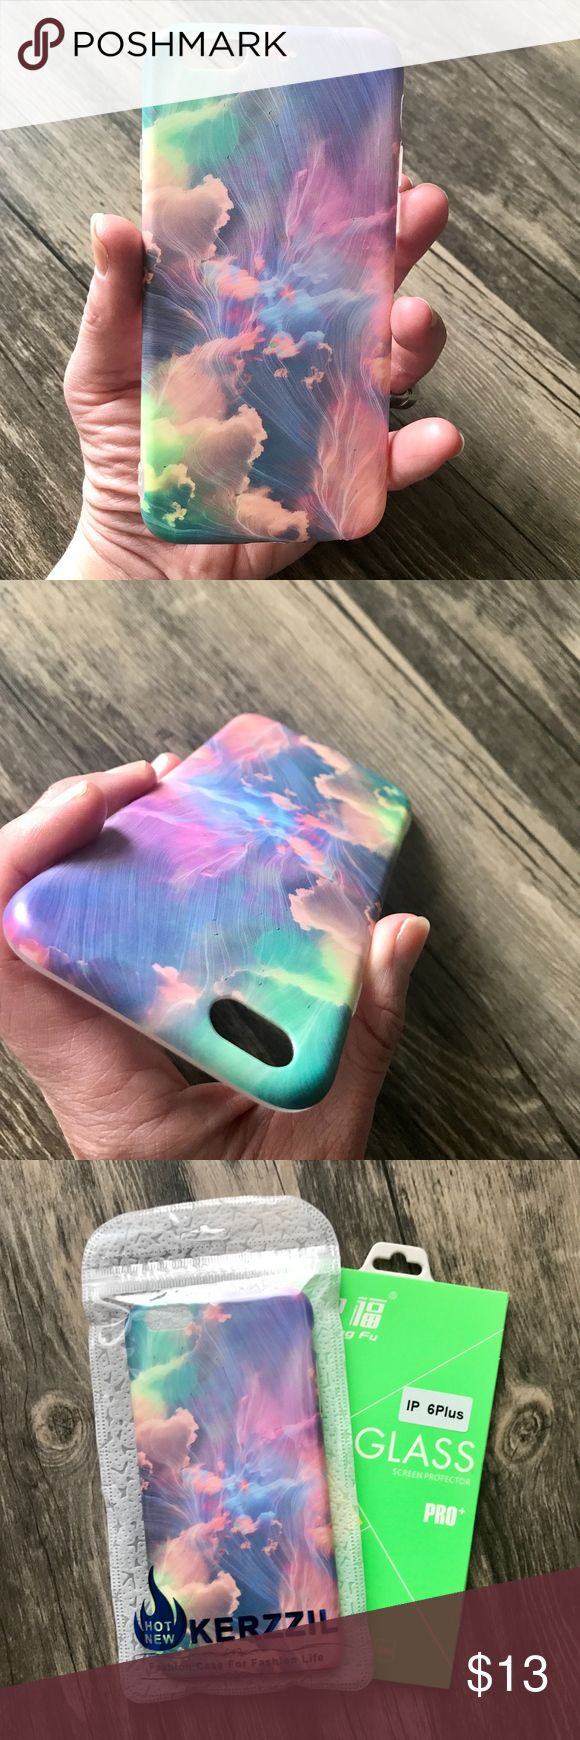 NEW iPhone 6/6s Plus IMD Soft TPU Case Bundle ▪️High Quality Soft Shock- Resistant TPU     ▪️IMD In-Mould Printed So Decoration Cannot Fade     ▪️FREE New Glass Screen Protector Included !     ▪️Same or Next Business Day Shipping Accessories Phone Cases